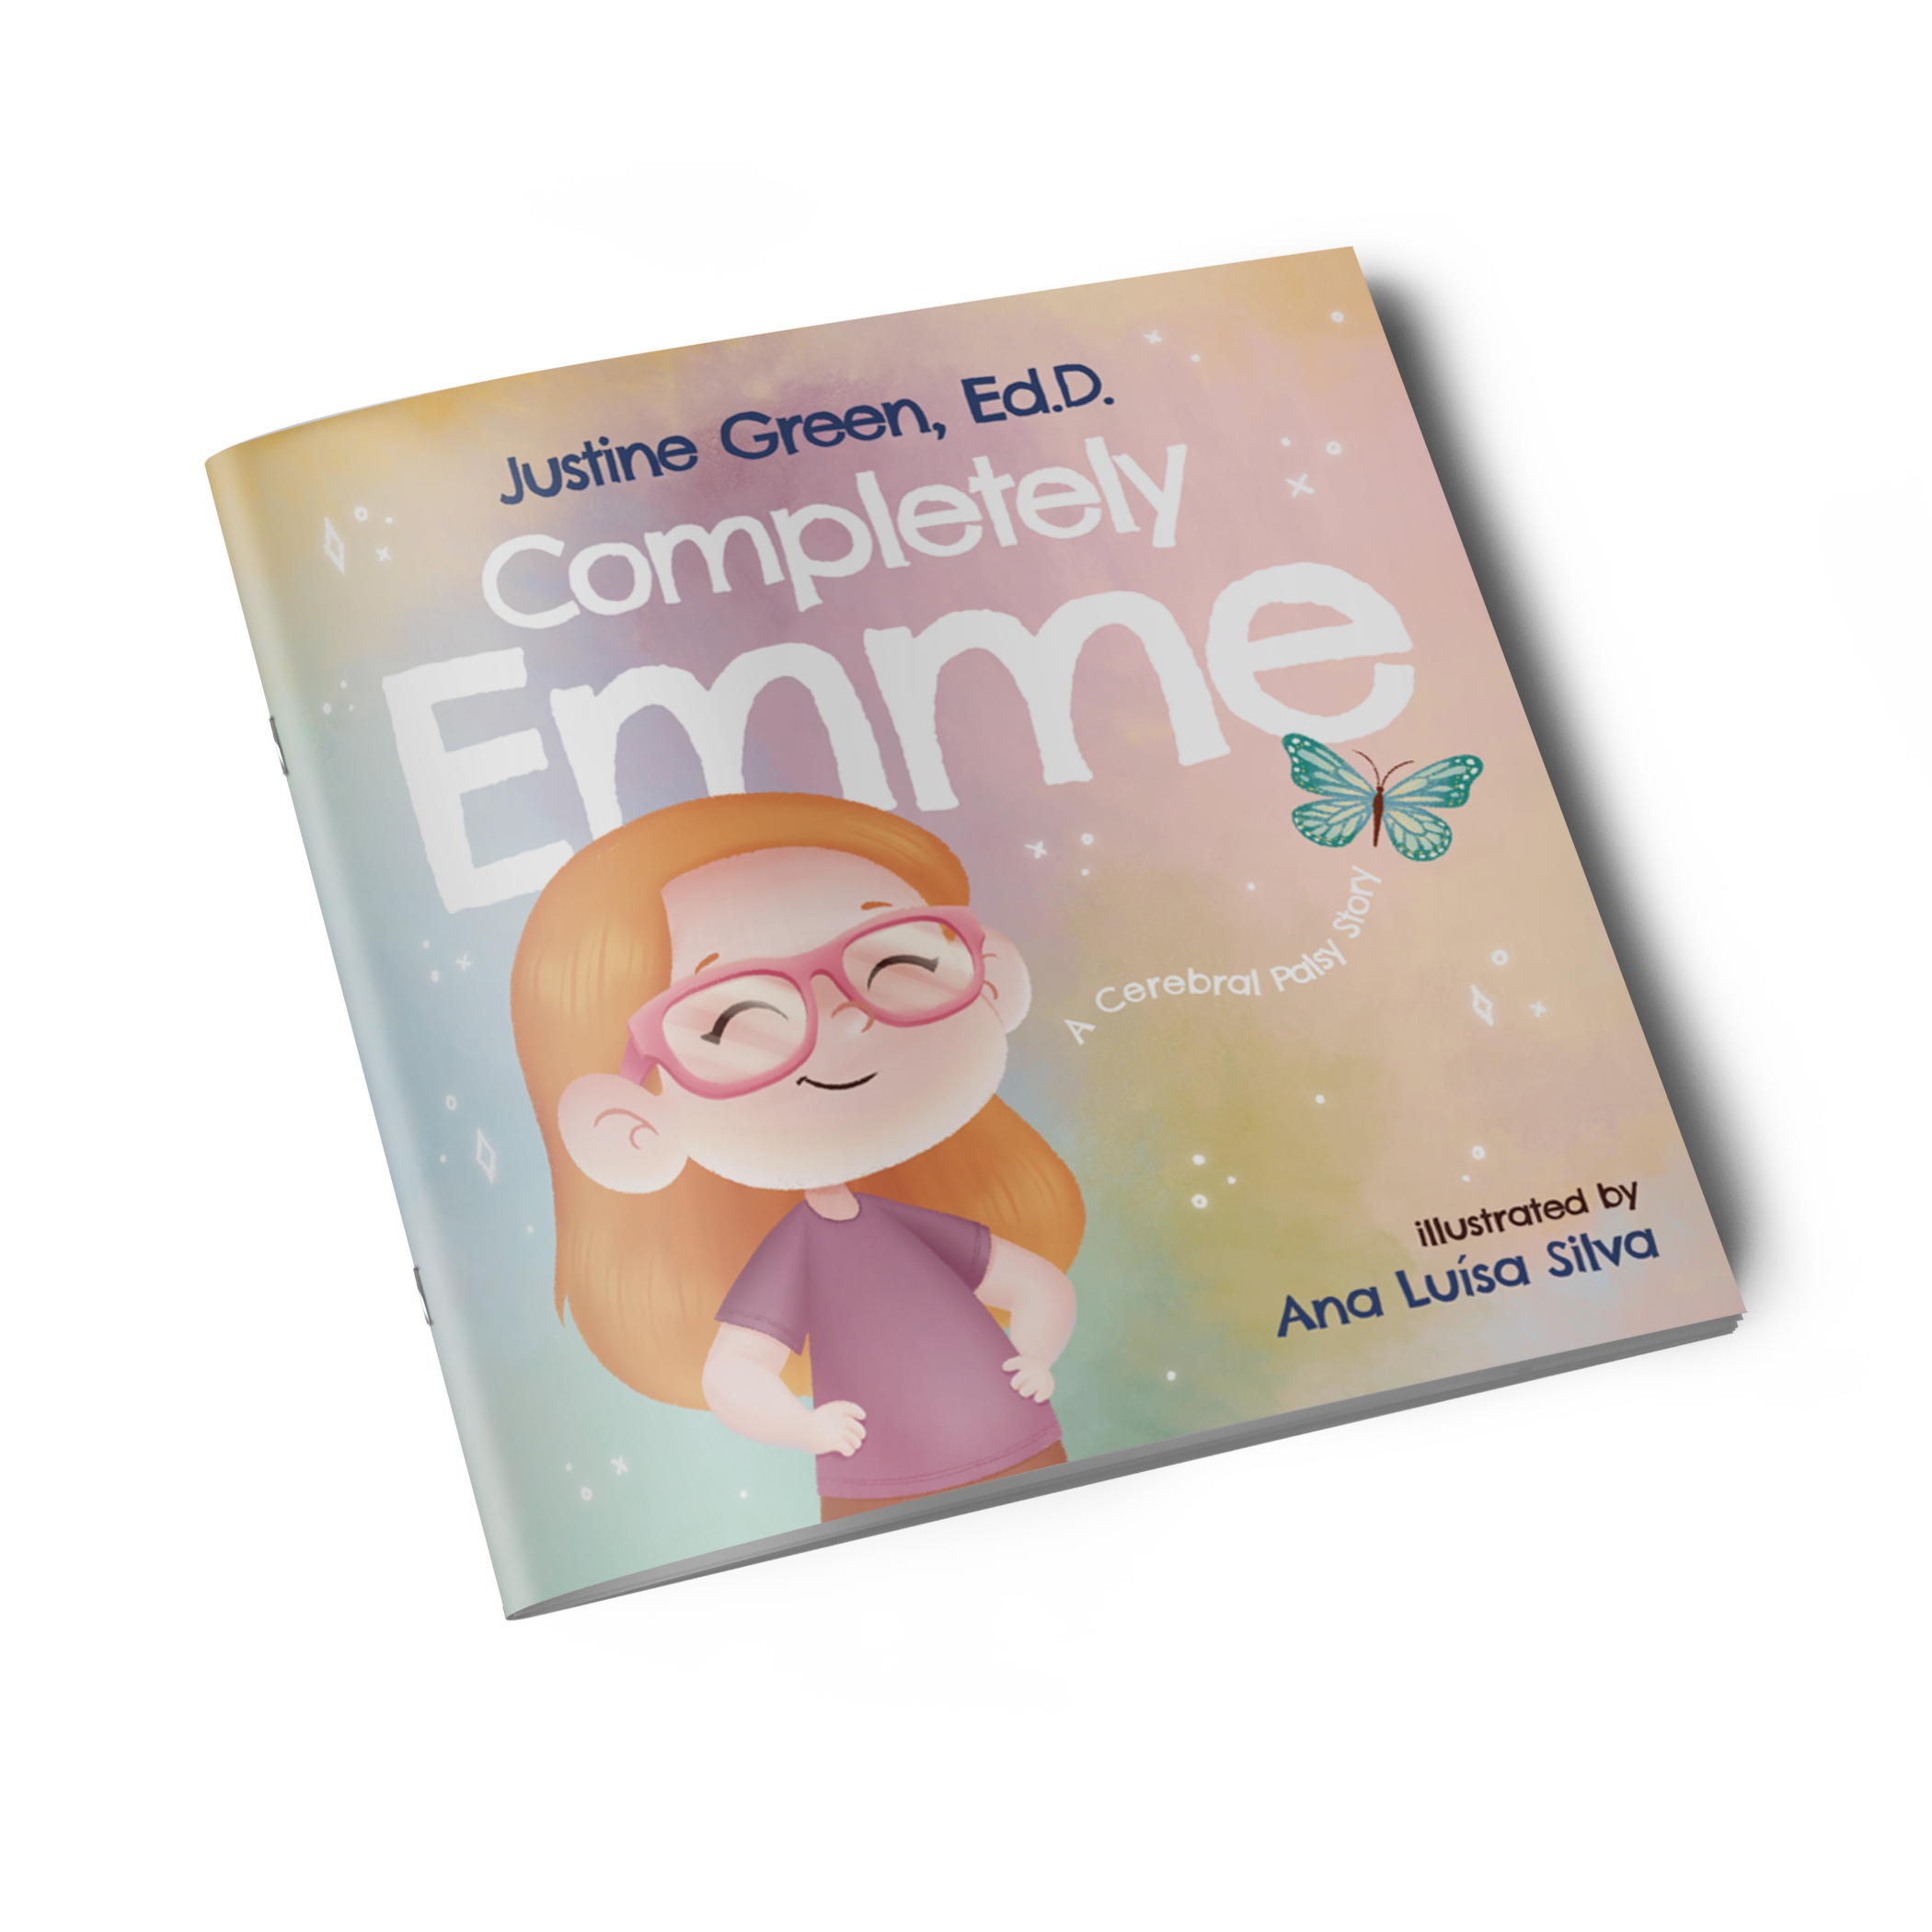 Completely Emme: A Cerebral Palsy Story